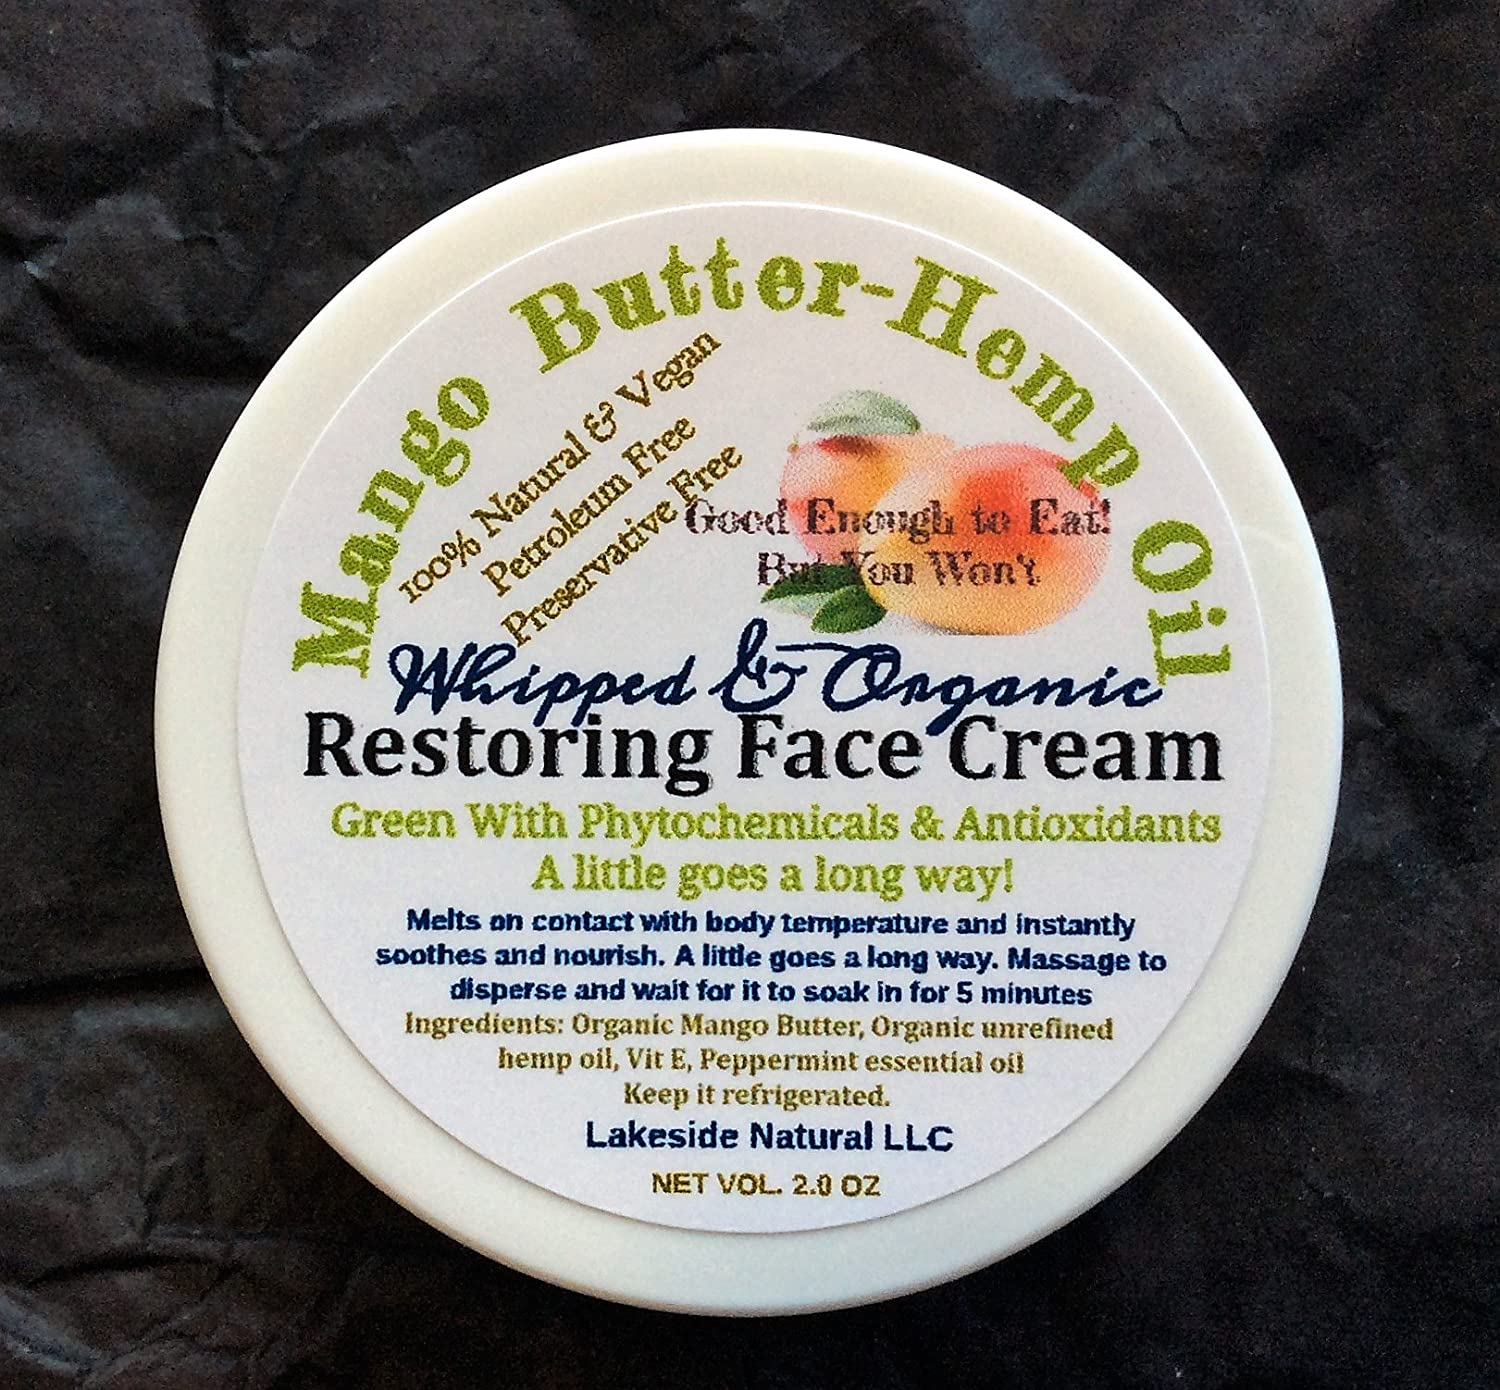 Zero Aqua Concentrated Instant Repair Face Balm Whipped & Organic - Mango Butter Hemp Oil Hydration Cream For Mature and Dry Skin, Winter Month Limited Edition.